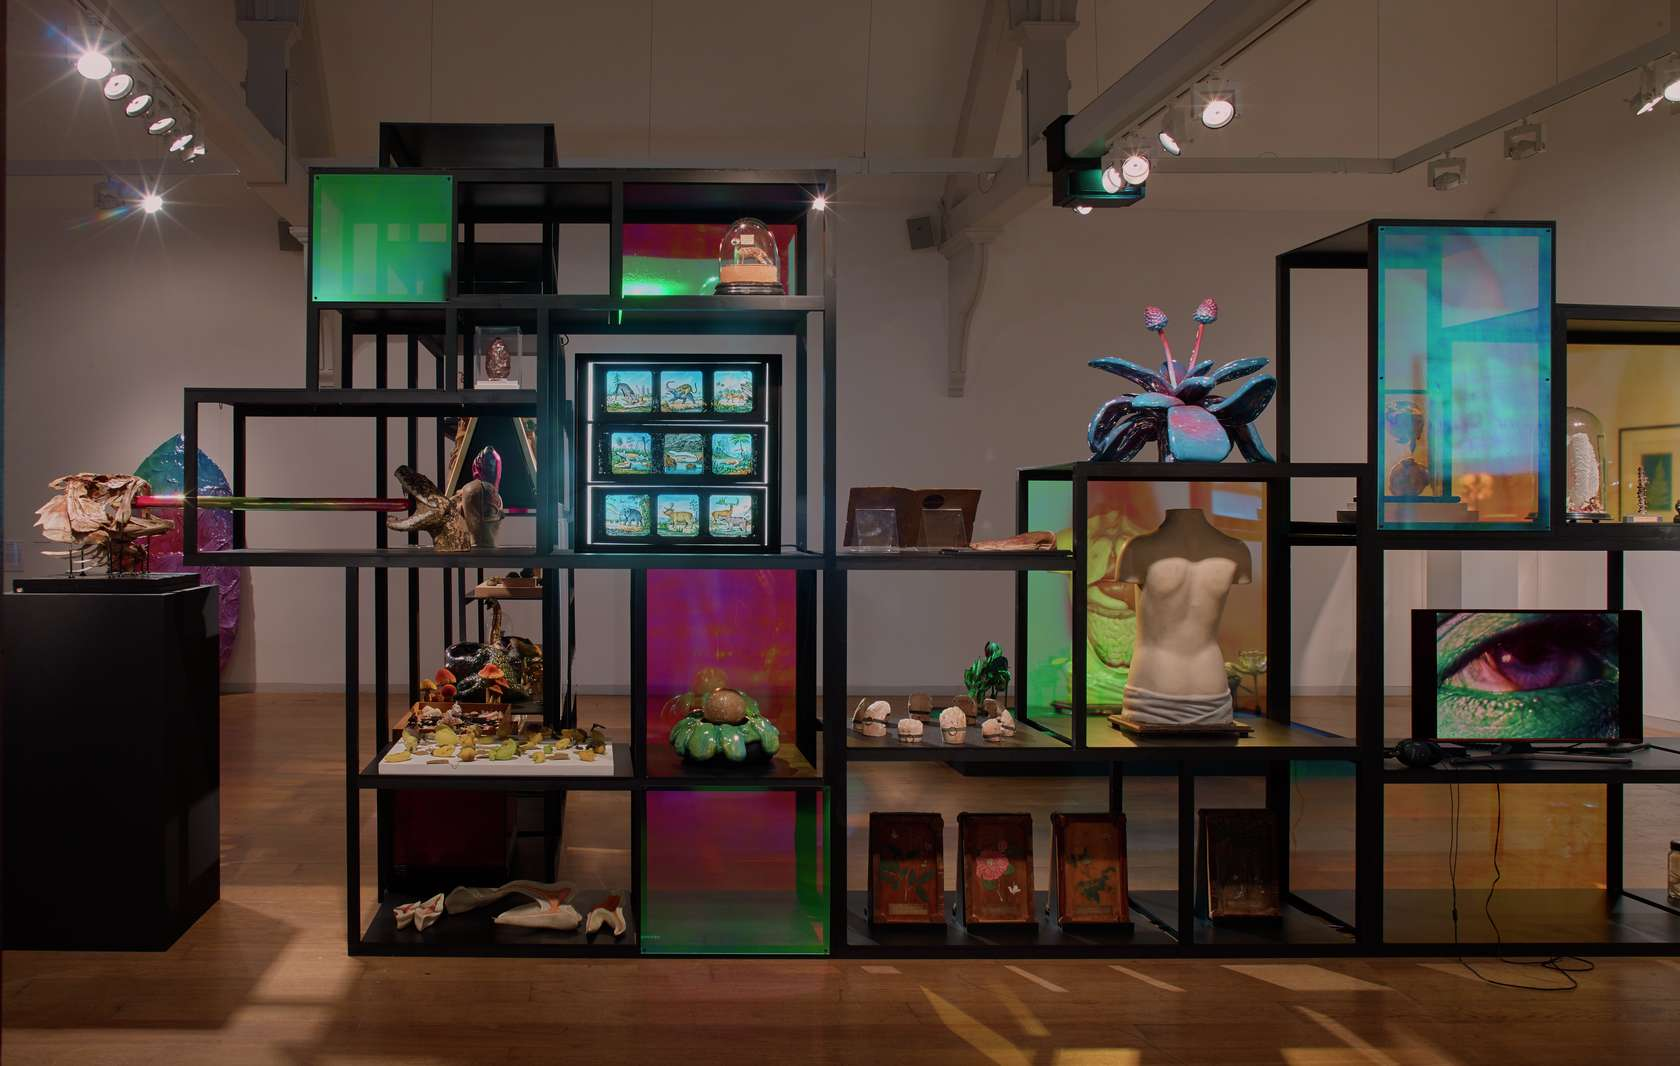 Salvatore Arancio, Surreal Sience : London Collection with Salvatore Arancio, 2018 Installation view of the exhibition at the Whitechapel Gallery, Londres (UK)